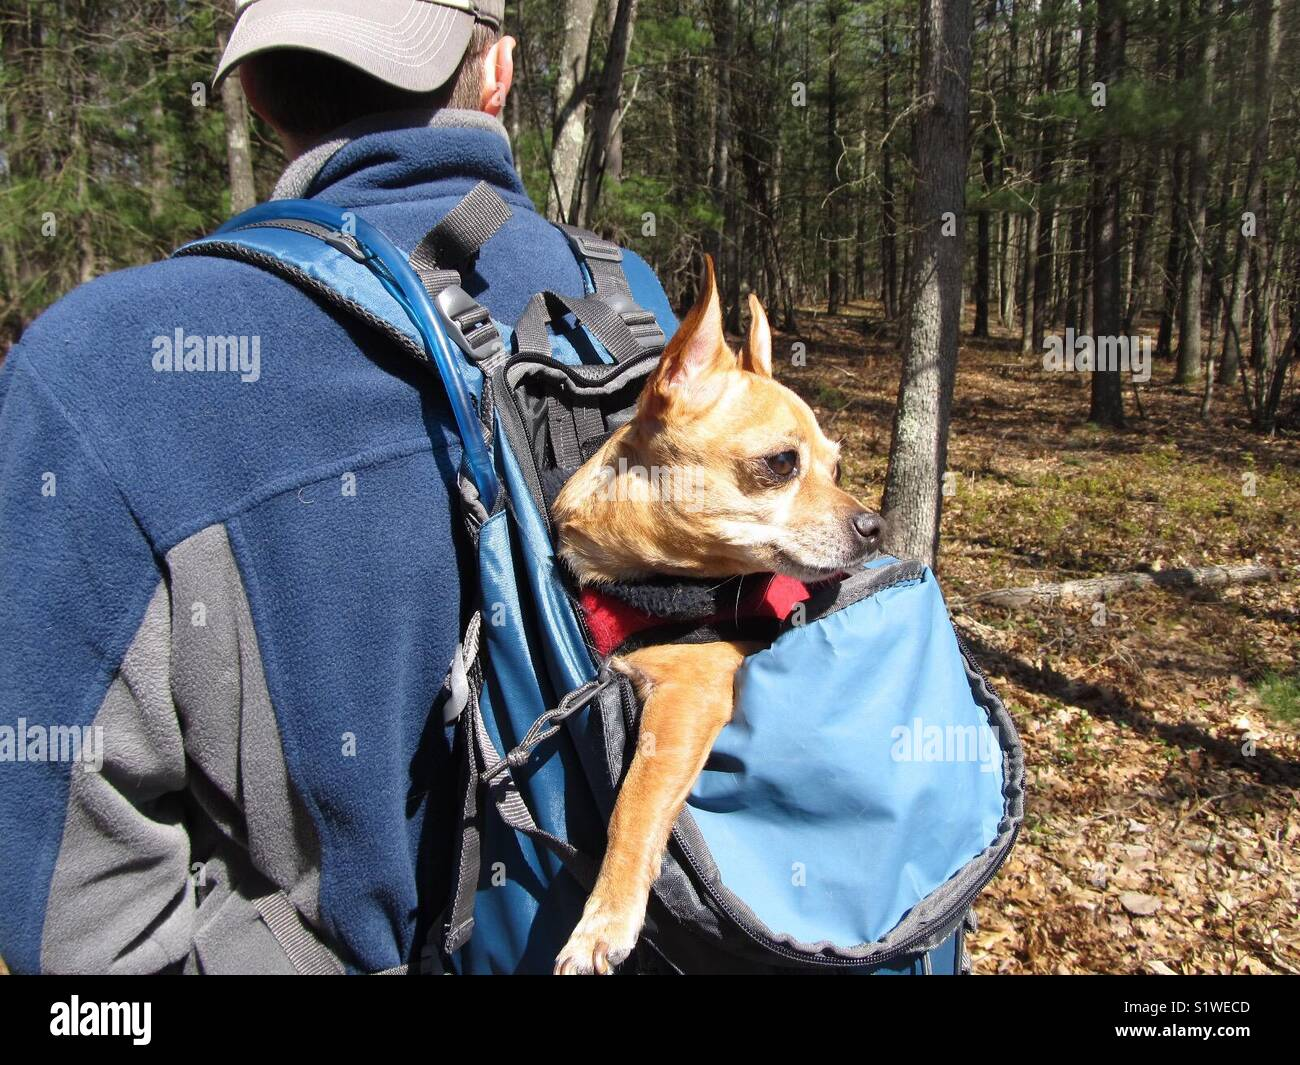 Tired pup in a backpack during a hike. - Stock Image